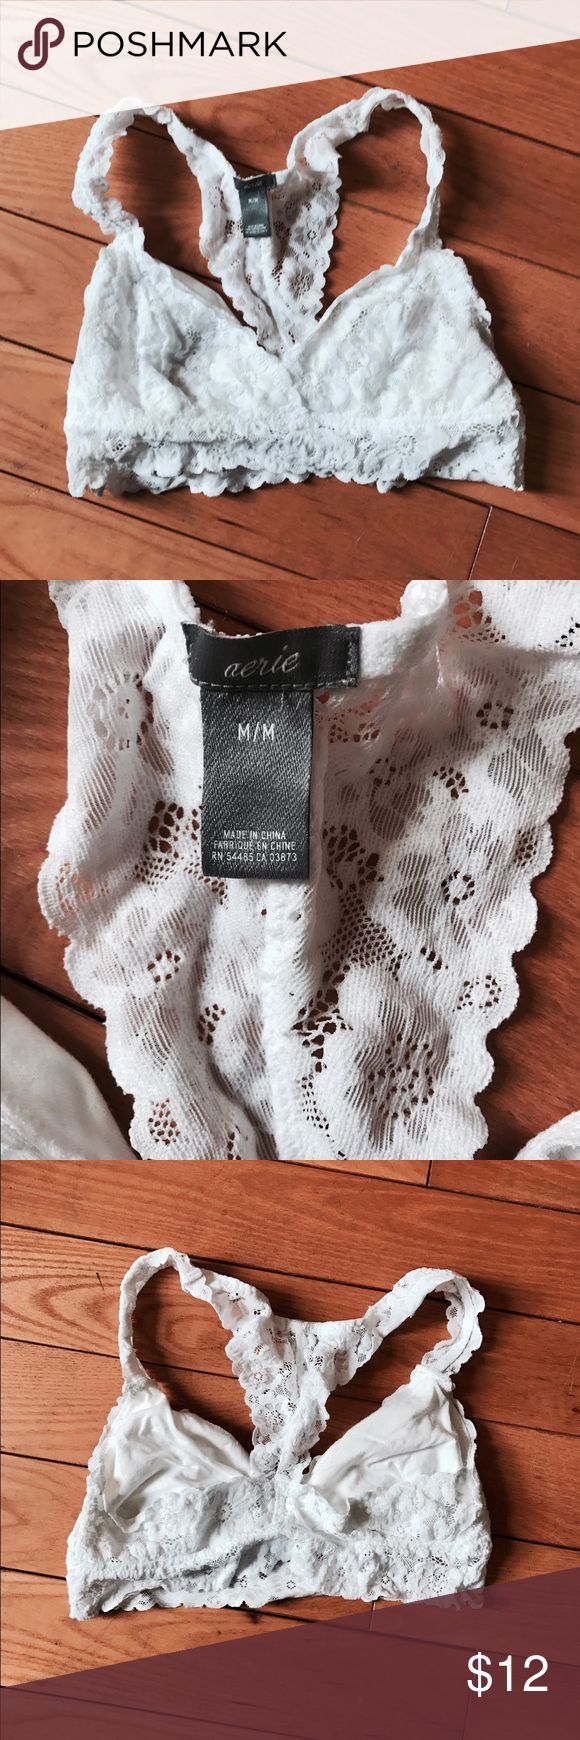 Aerie white lace bralette size Medium Aerie by American Eagle white lace racerback bralette size Medium, new without tags, never worn aerie Intimates & Sleepwear Bras